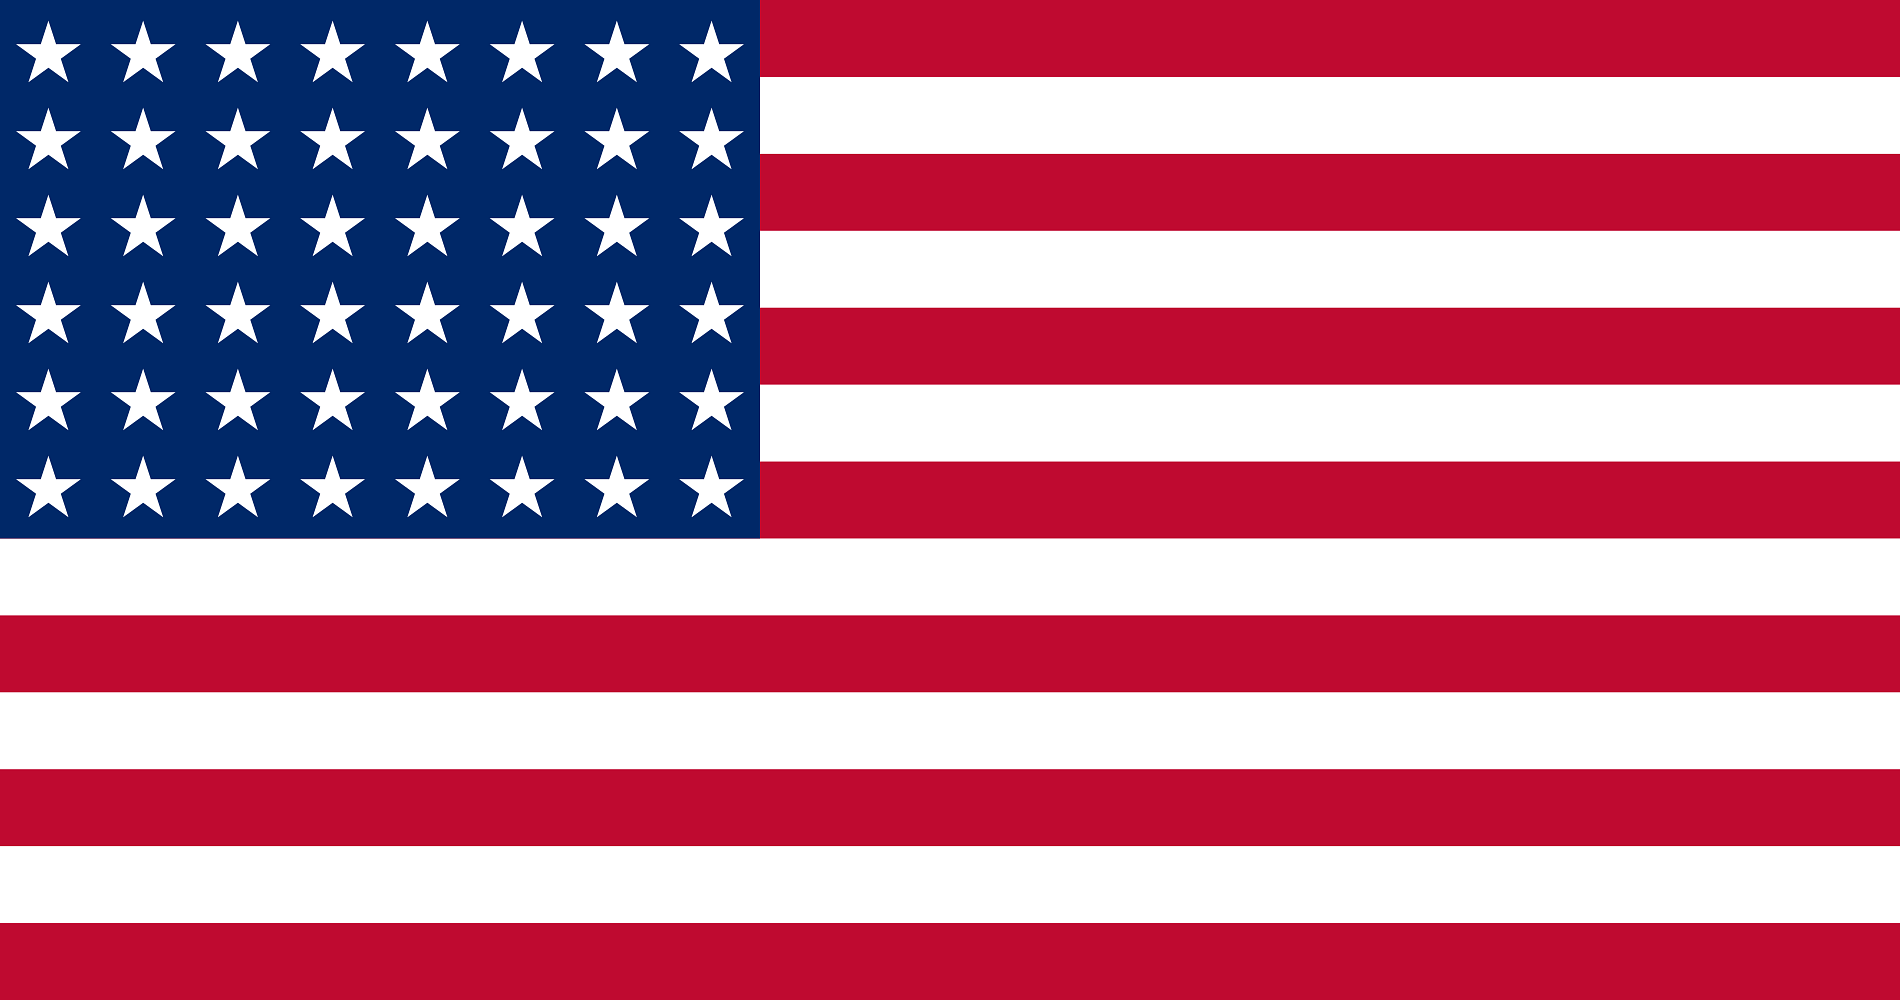 파일:1900px-Flag_of_the_United_States_(1912-1959).svg.png